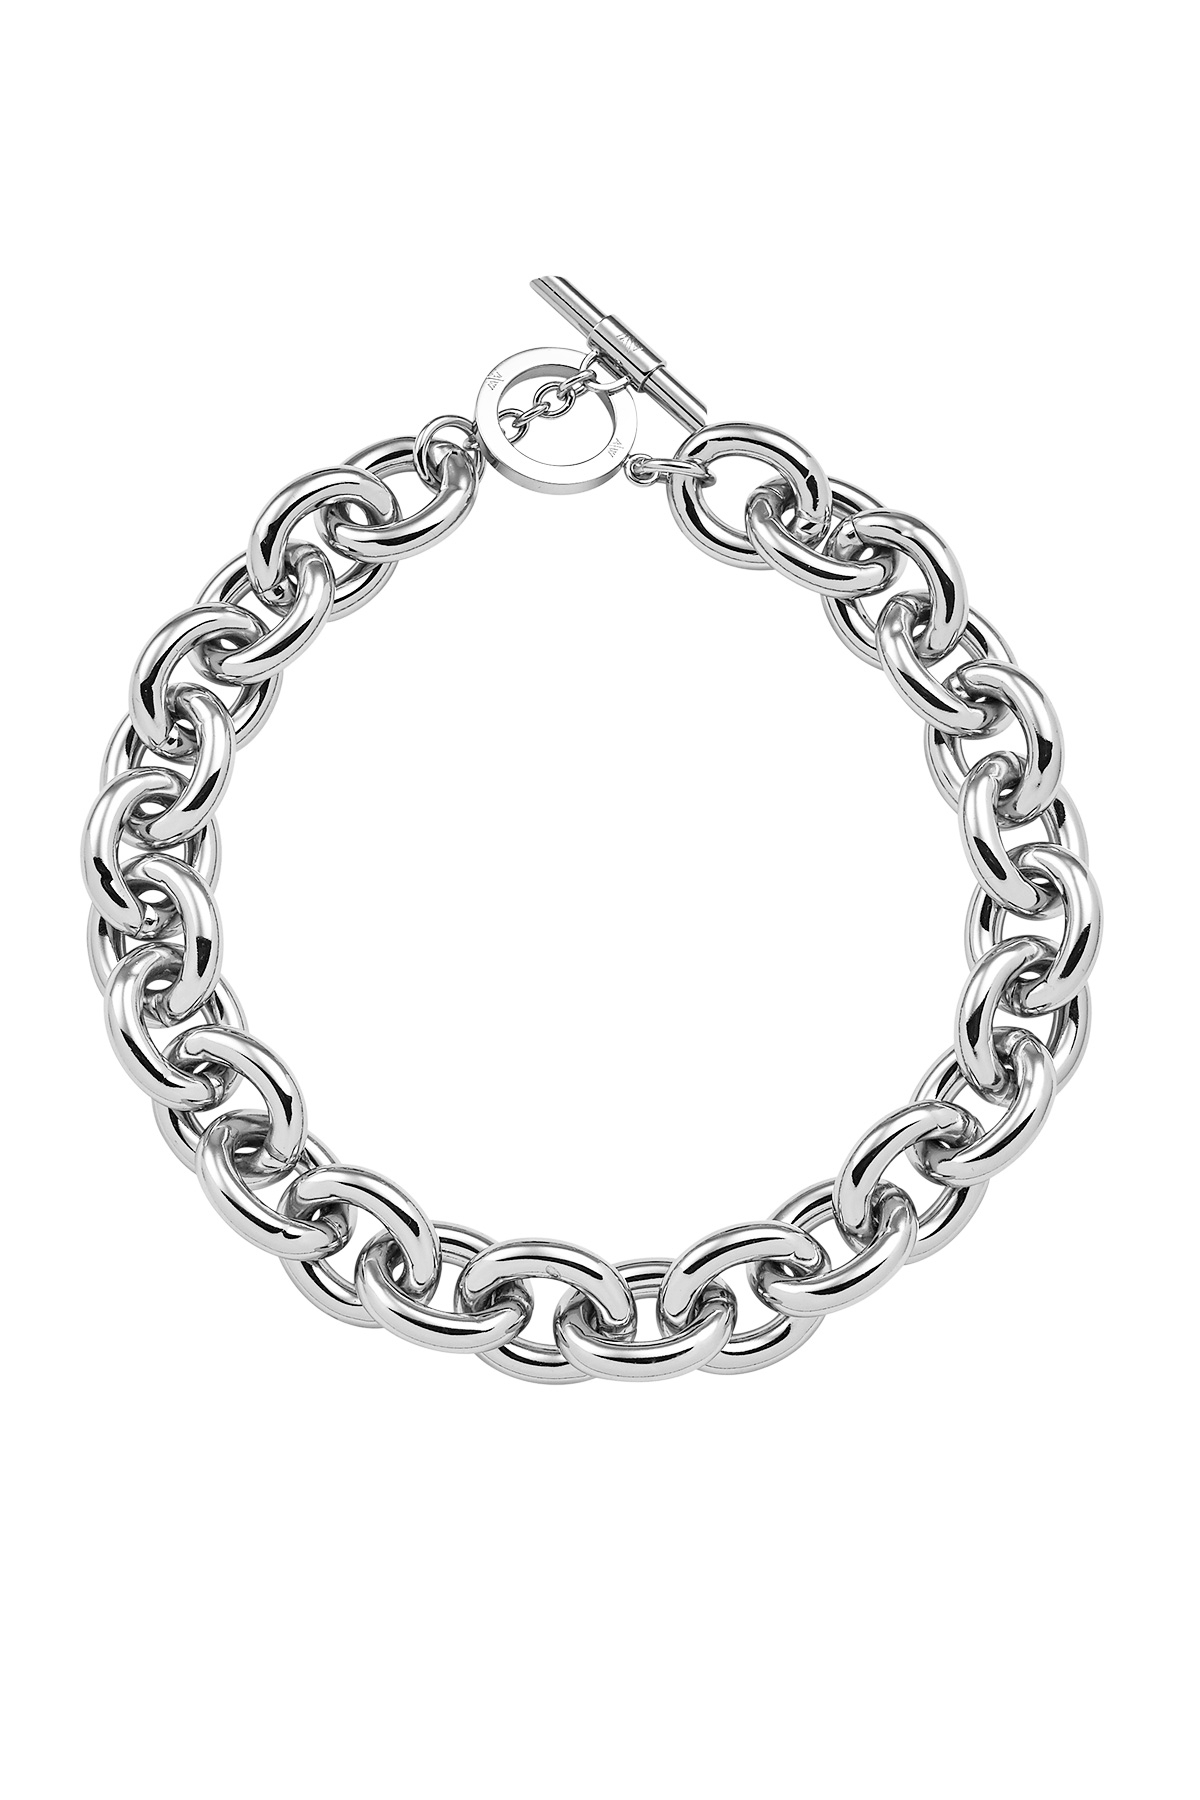 Chunky Silver Necklace Throughout Most Popular Silver Chain Necklaces (View 6 of 25)